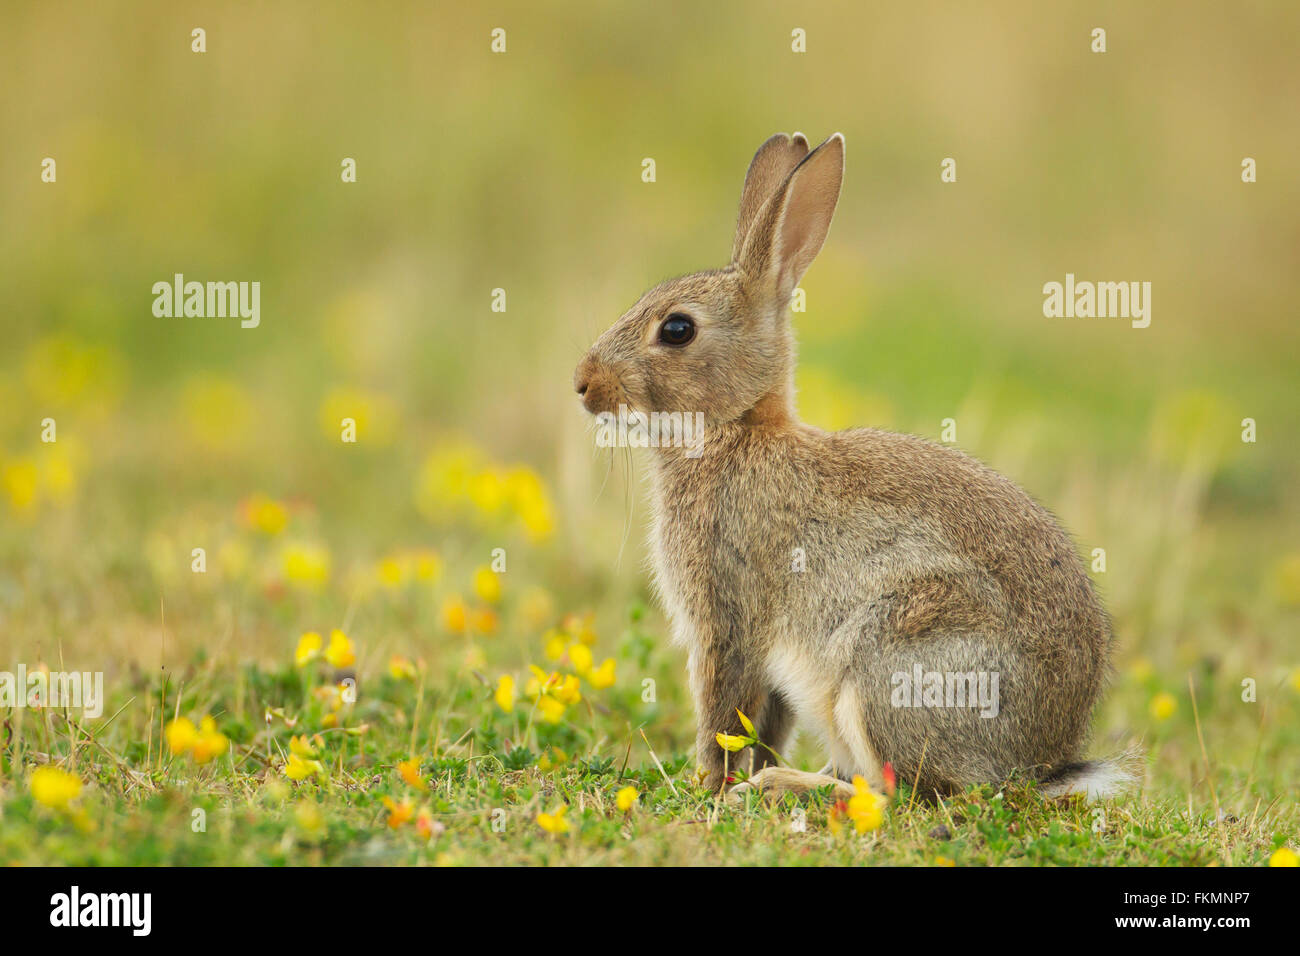 European Rabbit or Common Rabbit (Oryctolagus cunniculus), young animal with yellow flowers, Suffolk, United Kingdom - Stock Image